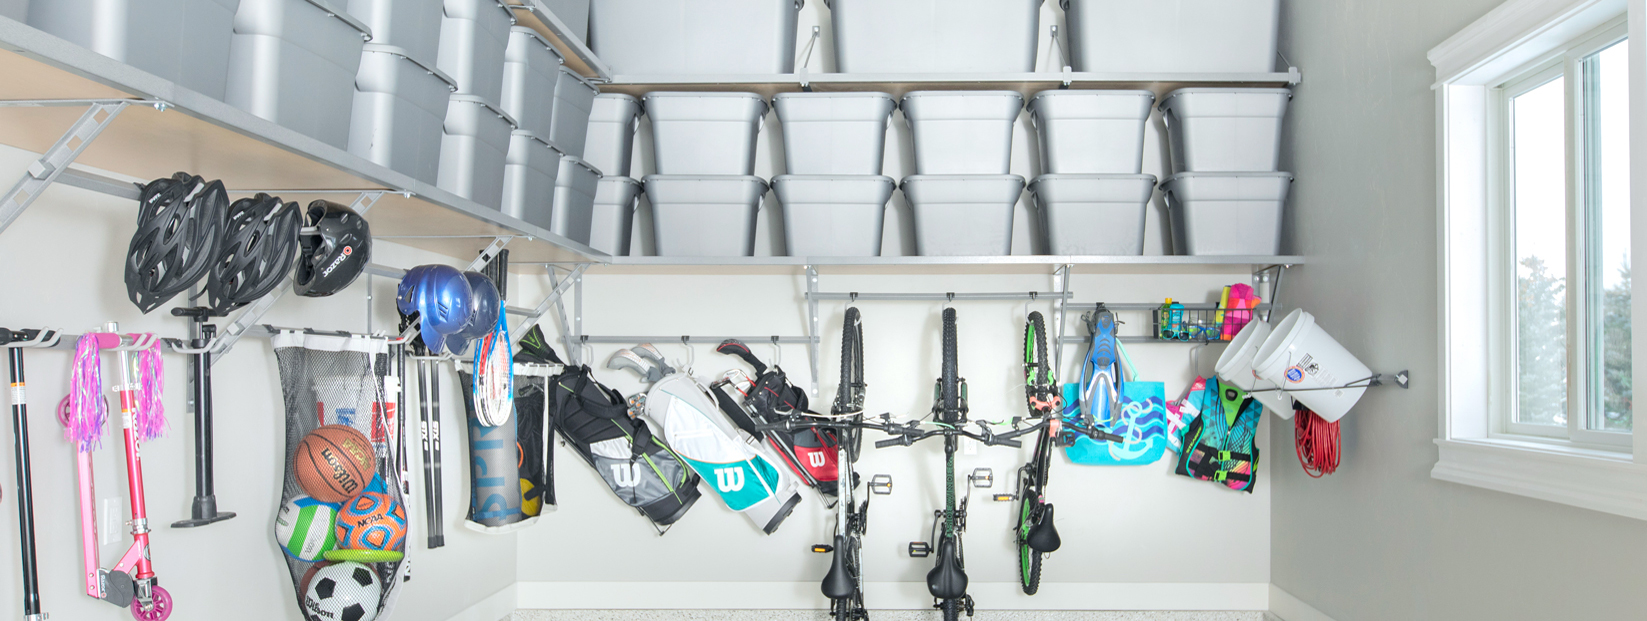 Garage Shelving Palm Beach